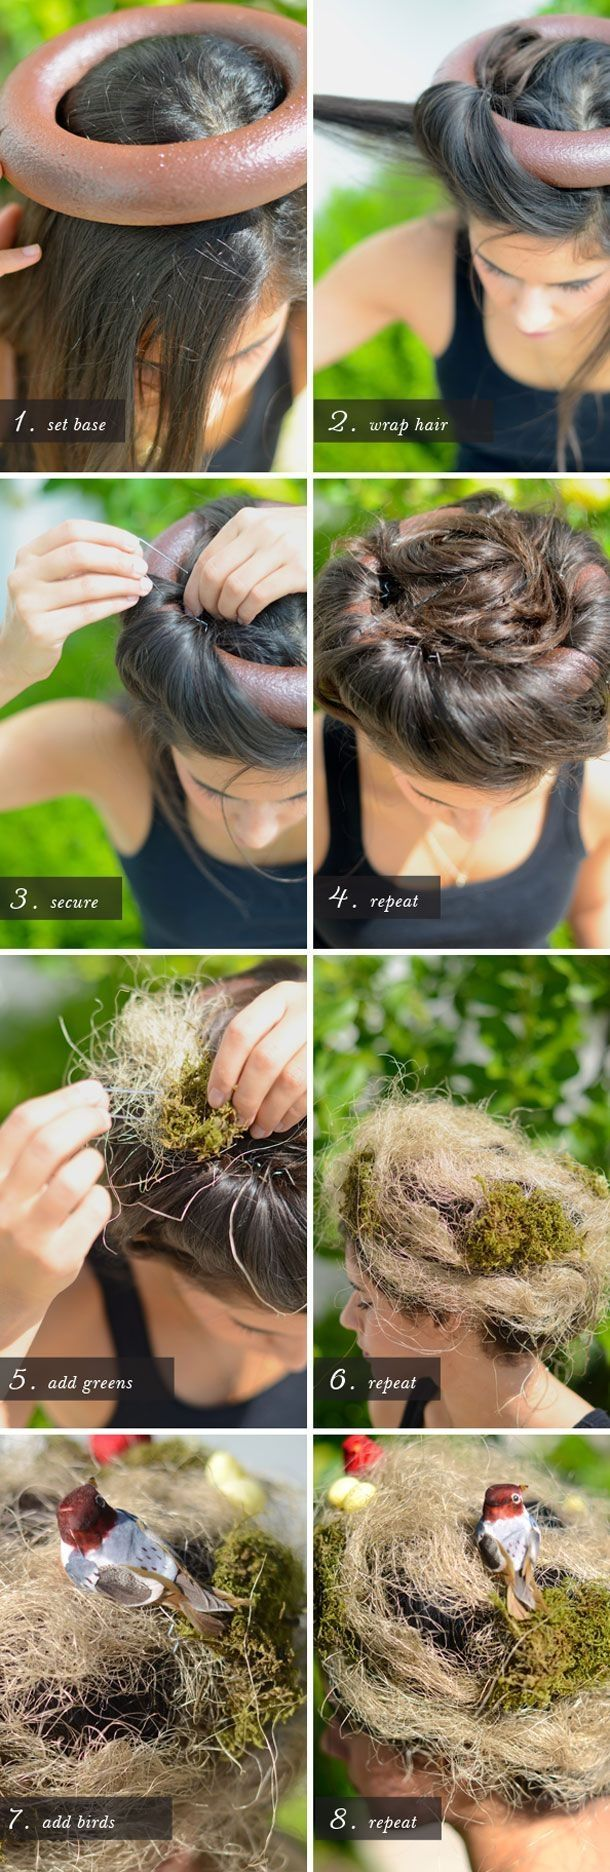 Halloween Birds Nest Hair halloween halloween crafts halloween ideas halloween costumes halloween costume ideas halloween costumes for adults